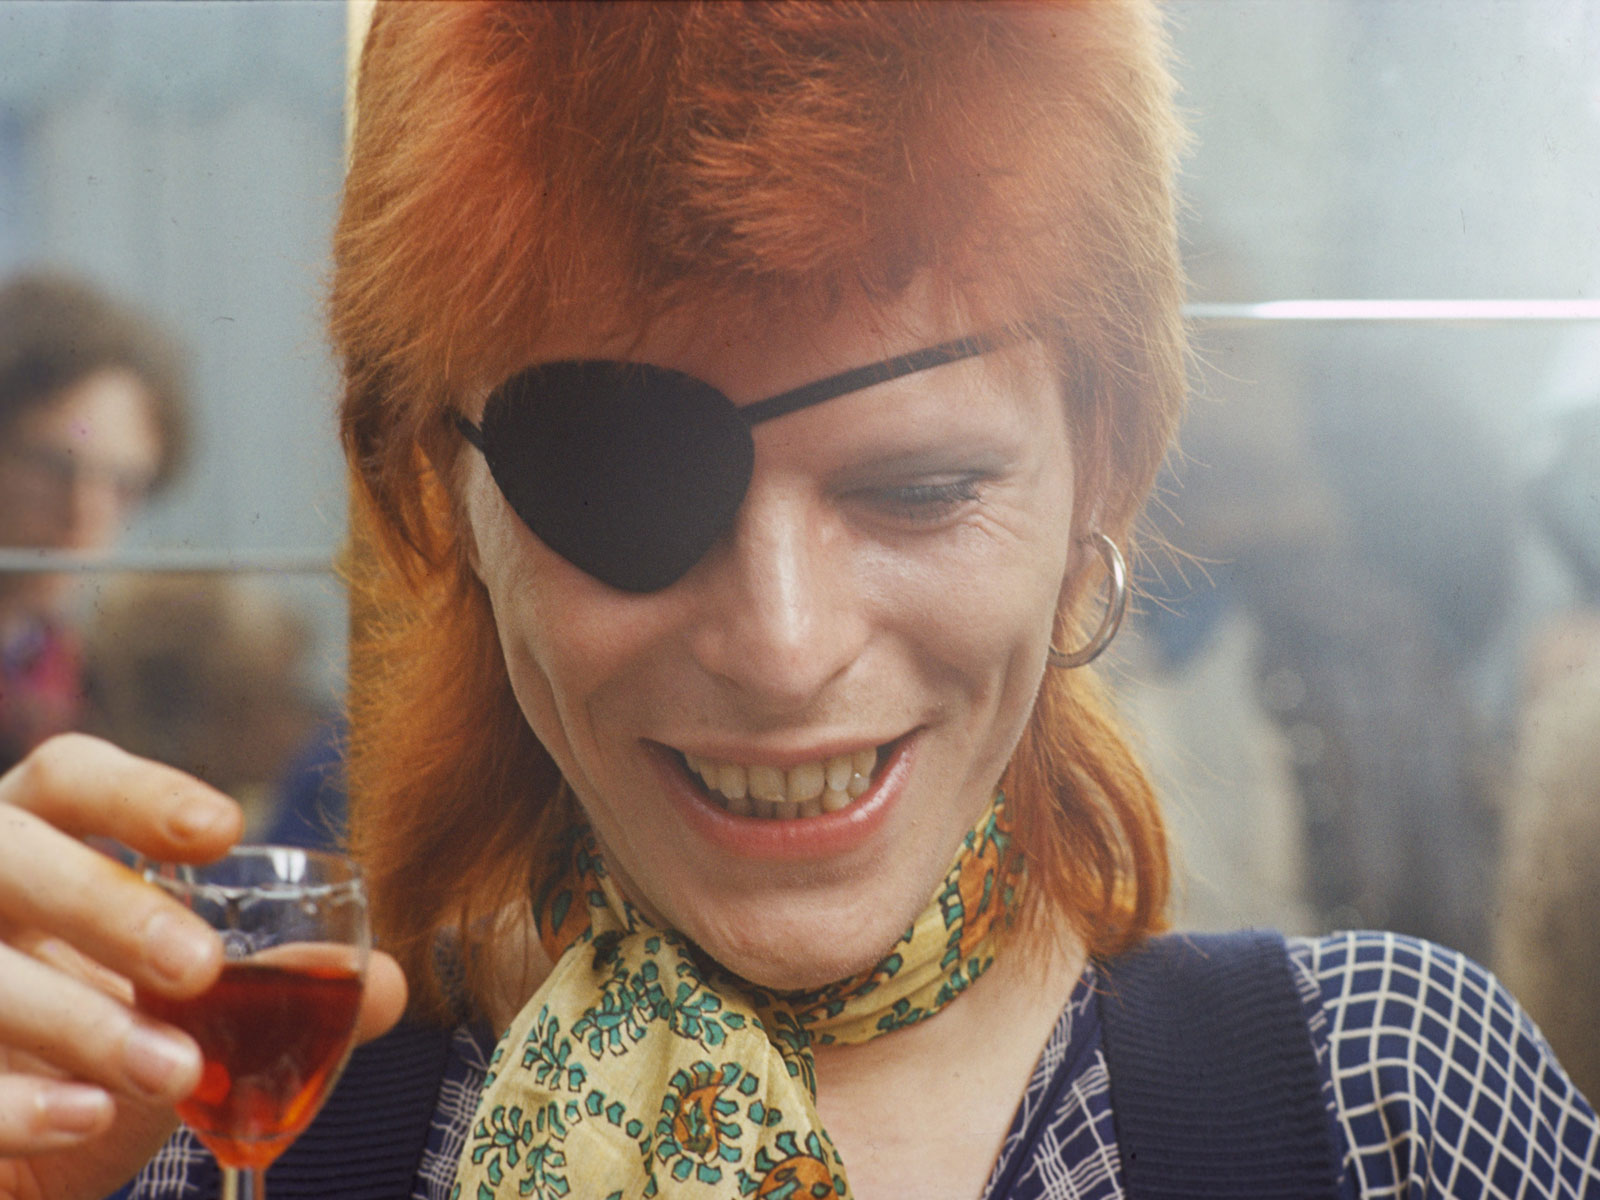 david-bowie-ziggy-stardust-bar-FT-BLOG0818.jpg